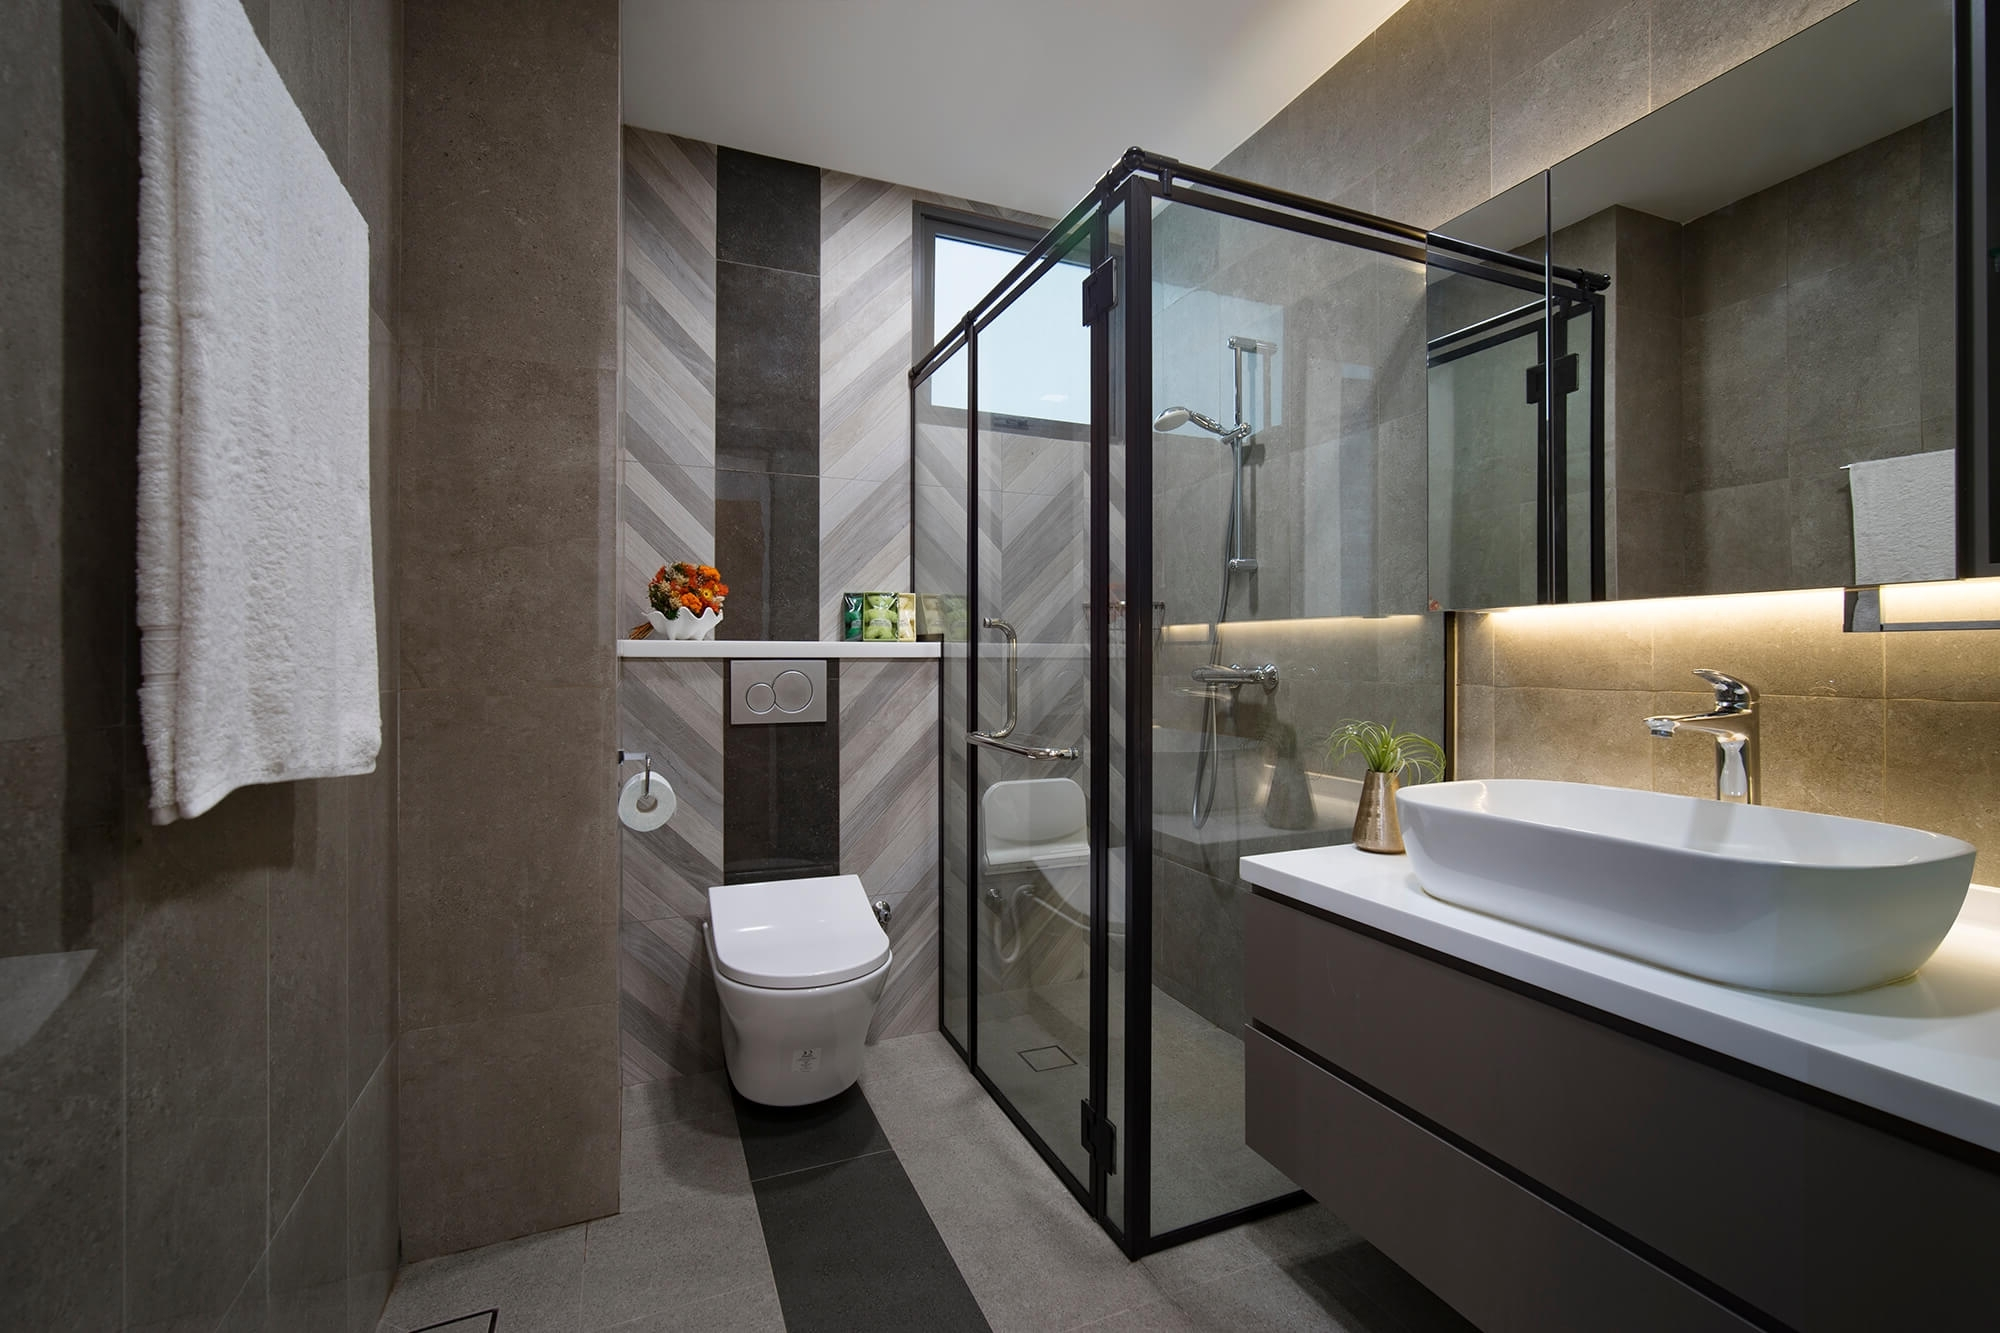 Things You Wish You'D Been Told About Bathroom Renovations 20+ Hdb Bathroom Interior Design Ideas